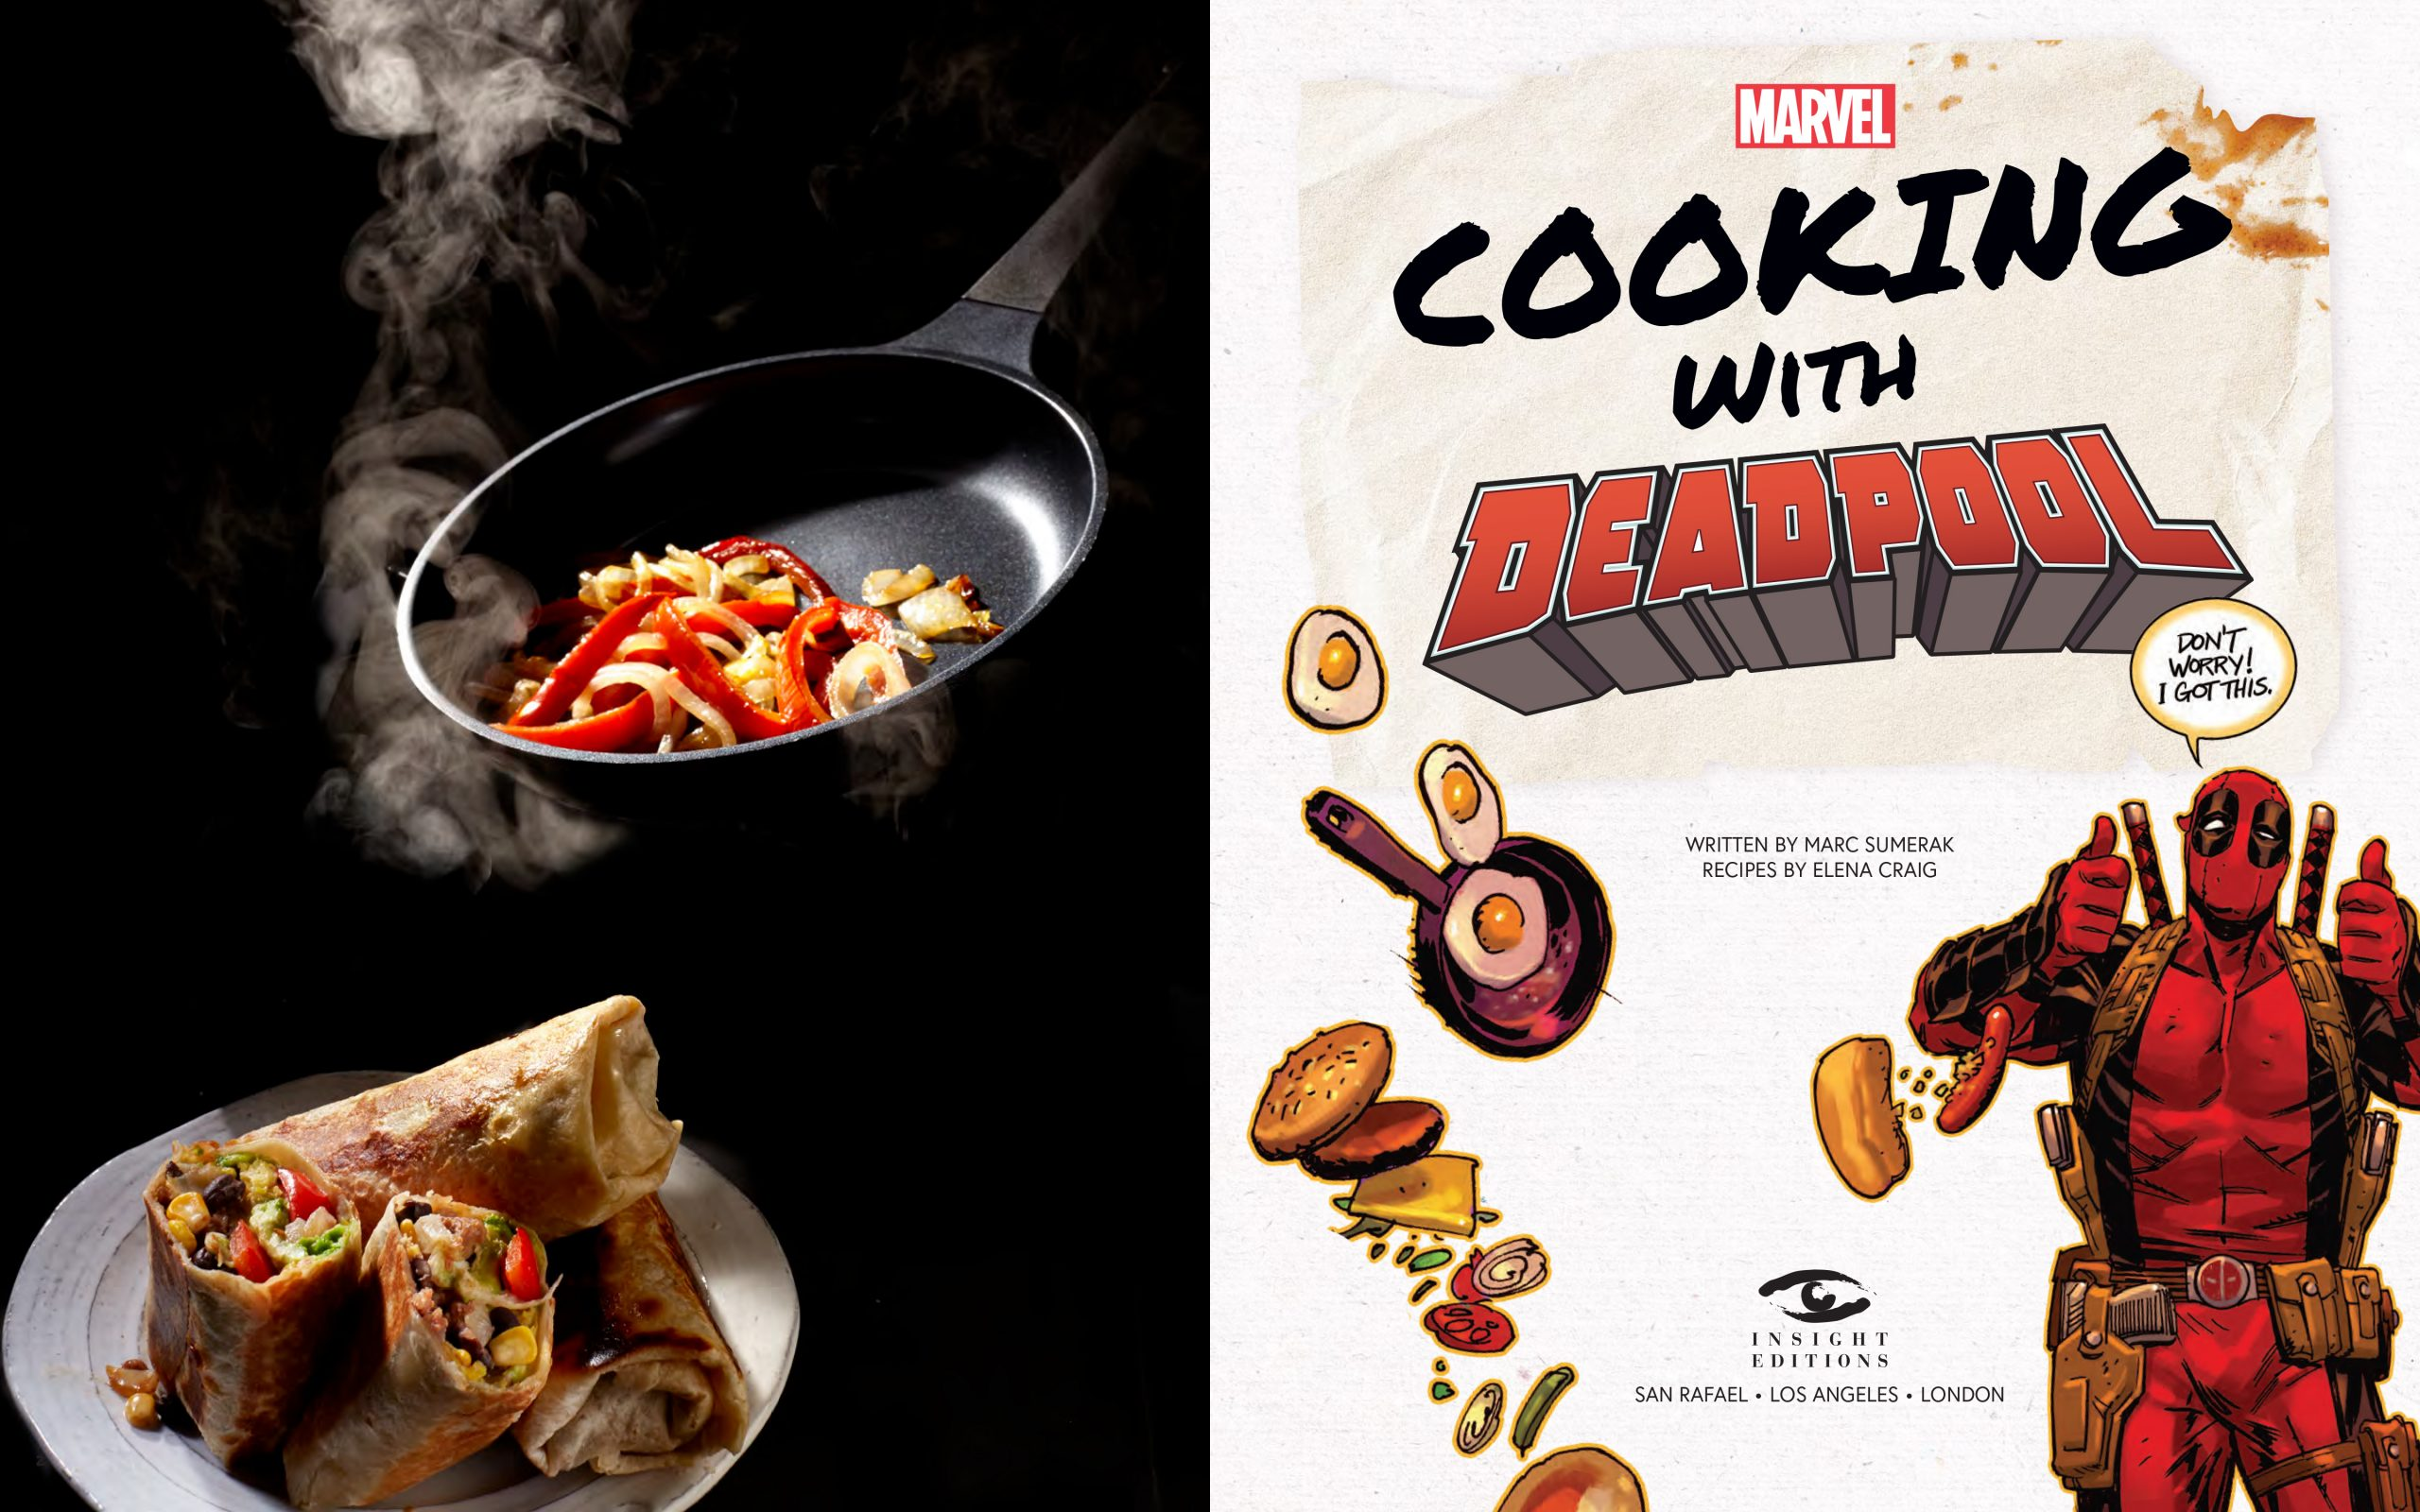 COOKING WITH DEADPOOL